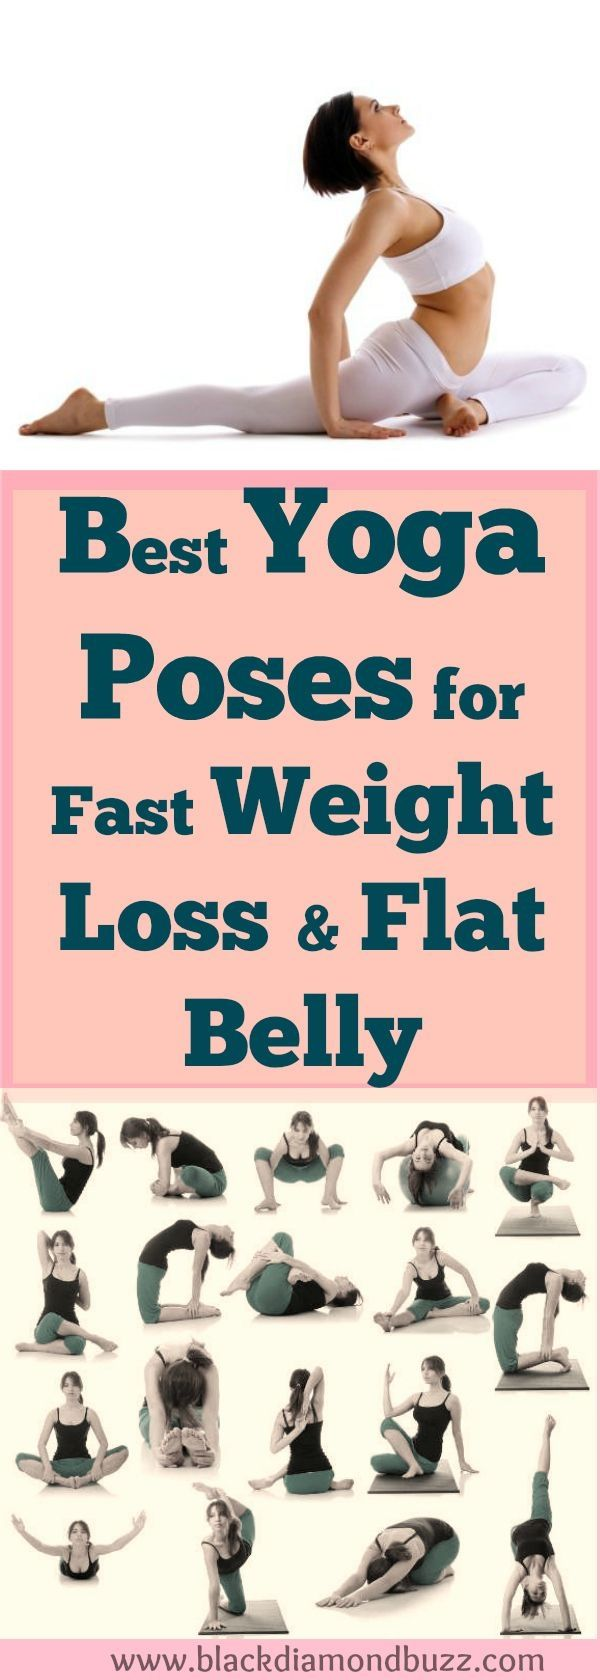 will daily yoga provide weight loss